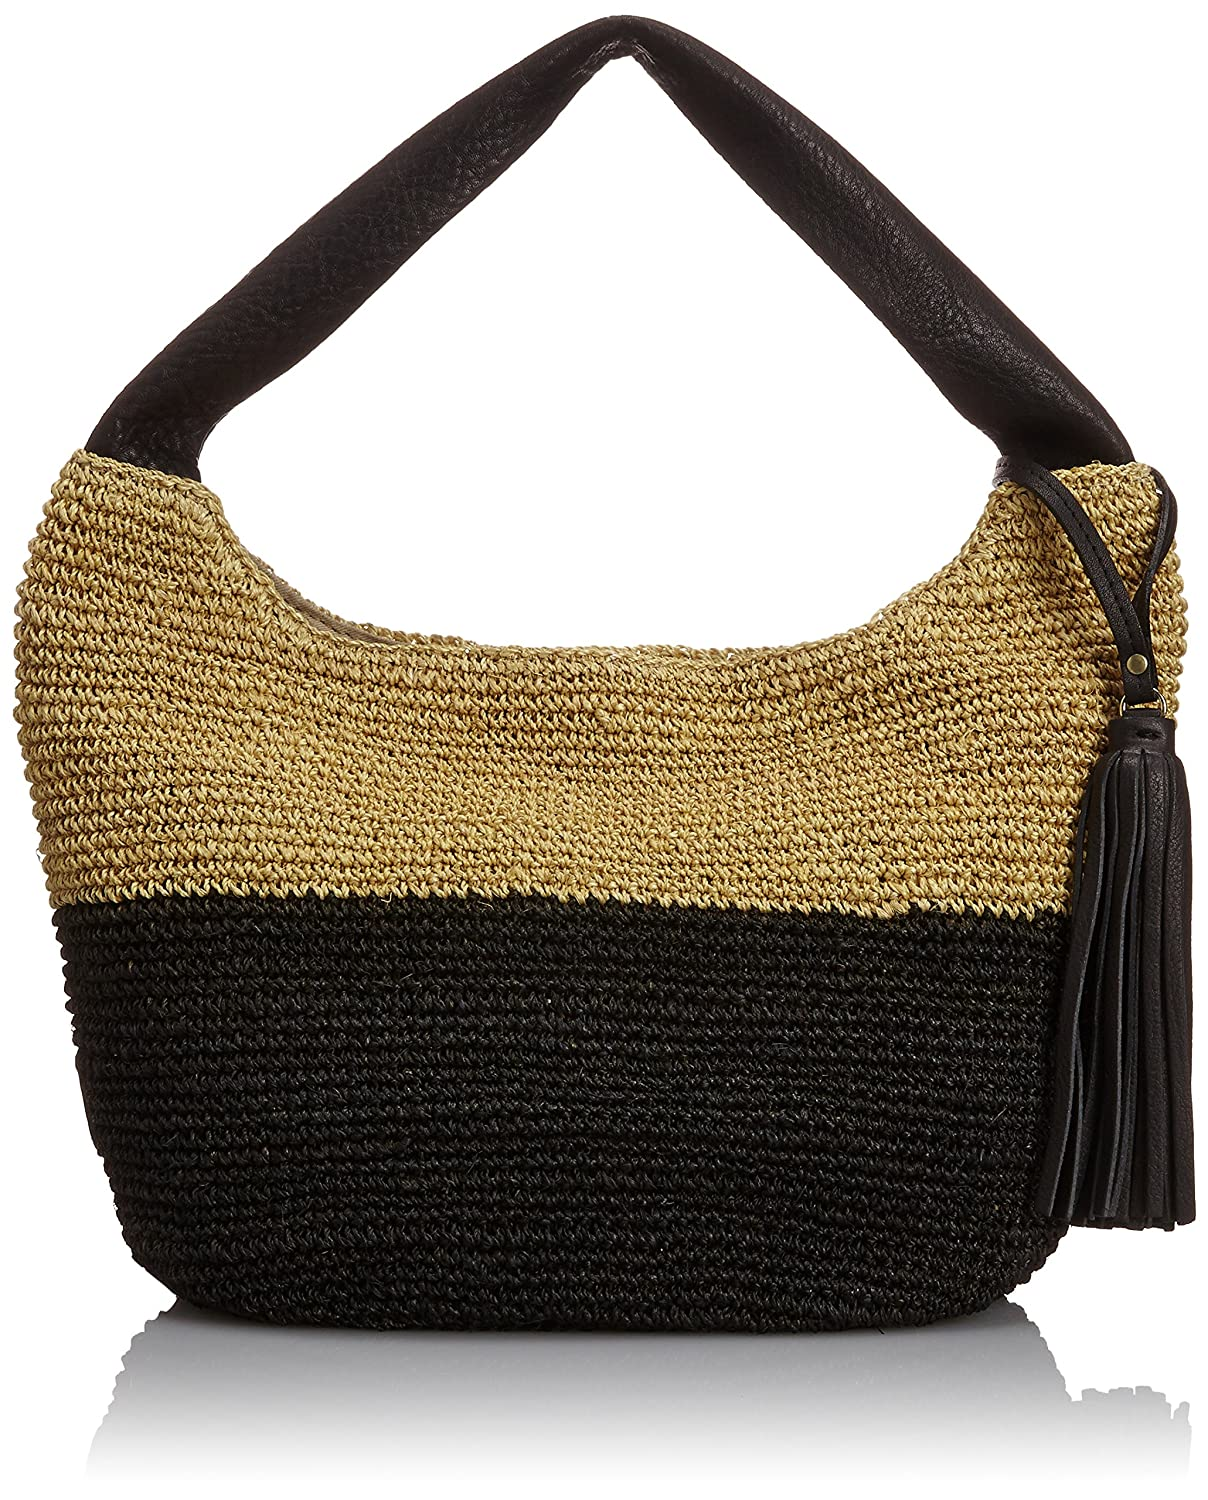 Amazon.co.jp: [ヴィオラドーロ] VIOLAd'ORO Basket Bag V-8034 BK (natural x black): シューズ&バッグ:通販